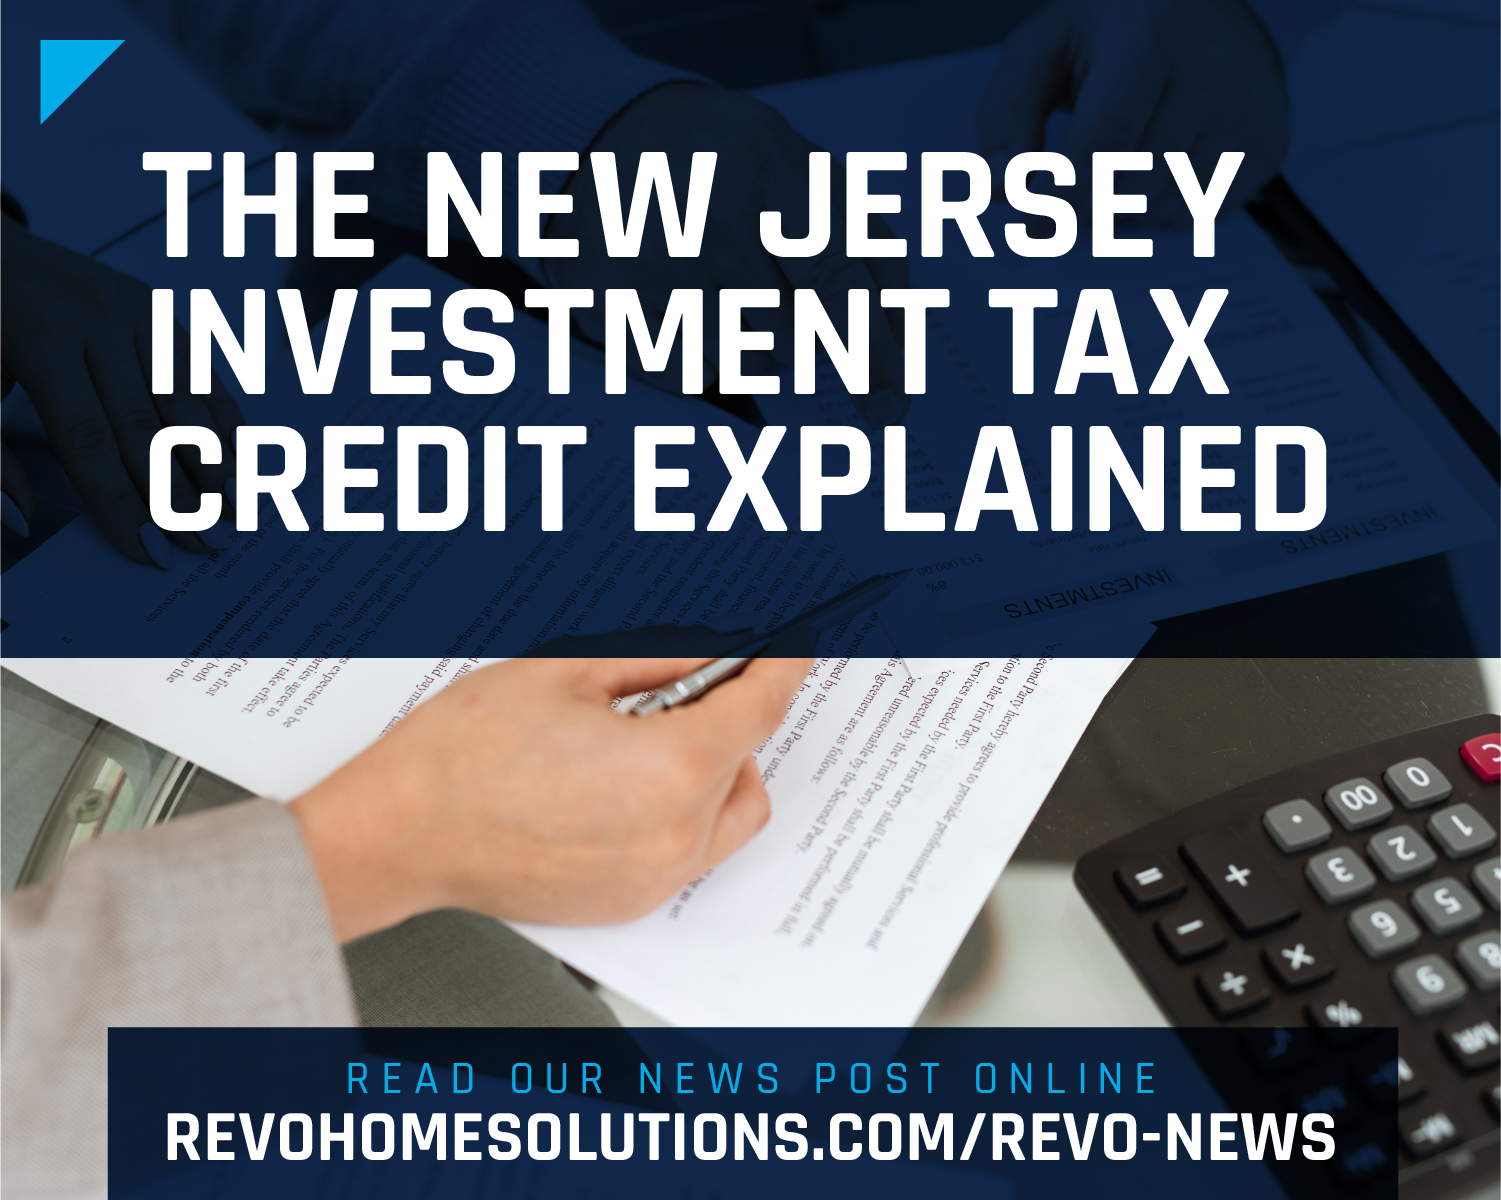 The New Jersey Tax Credit Explained